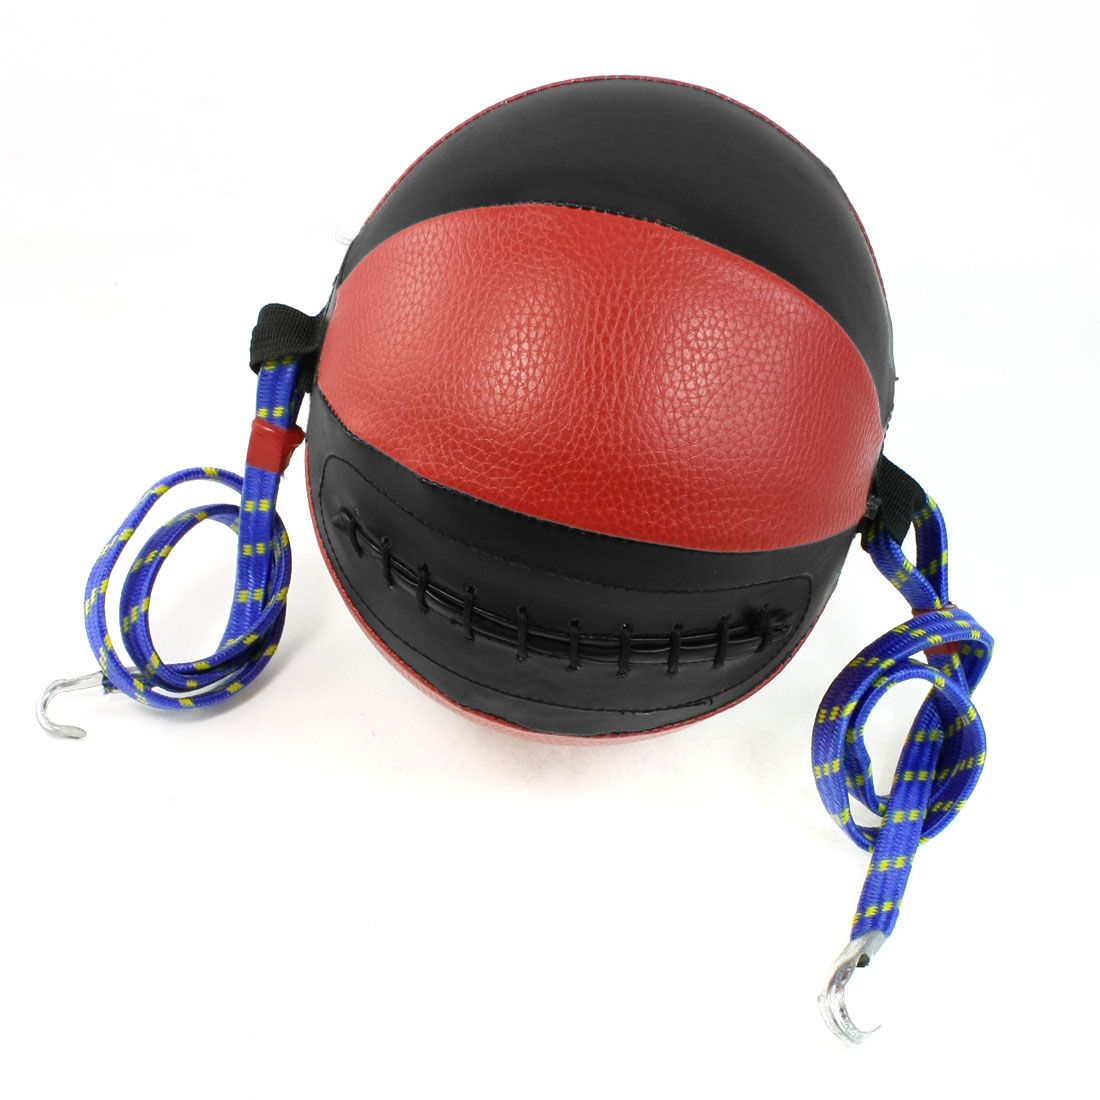 Boxing Sports Stretchy Rope Both End Black Red Faux Leather Speed Ball